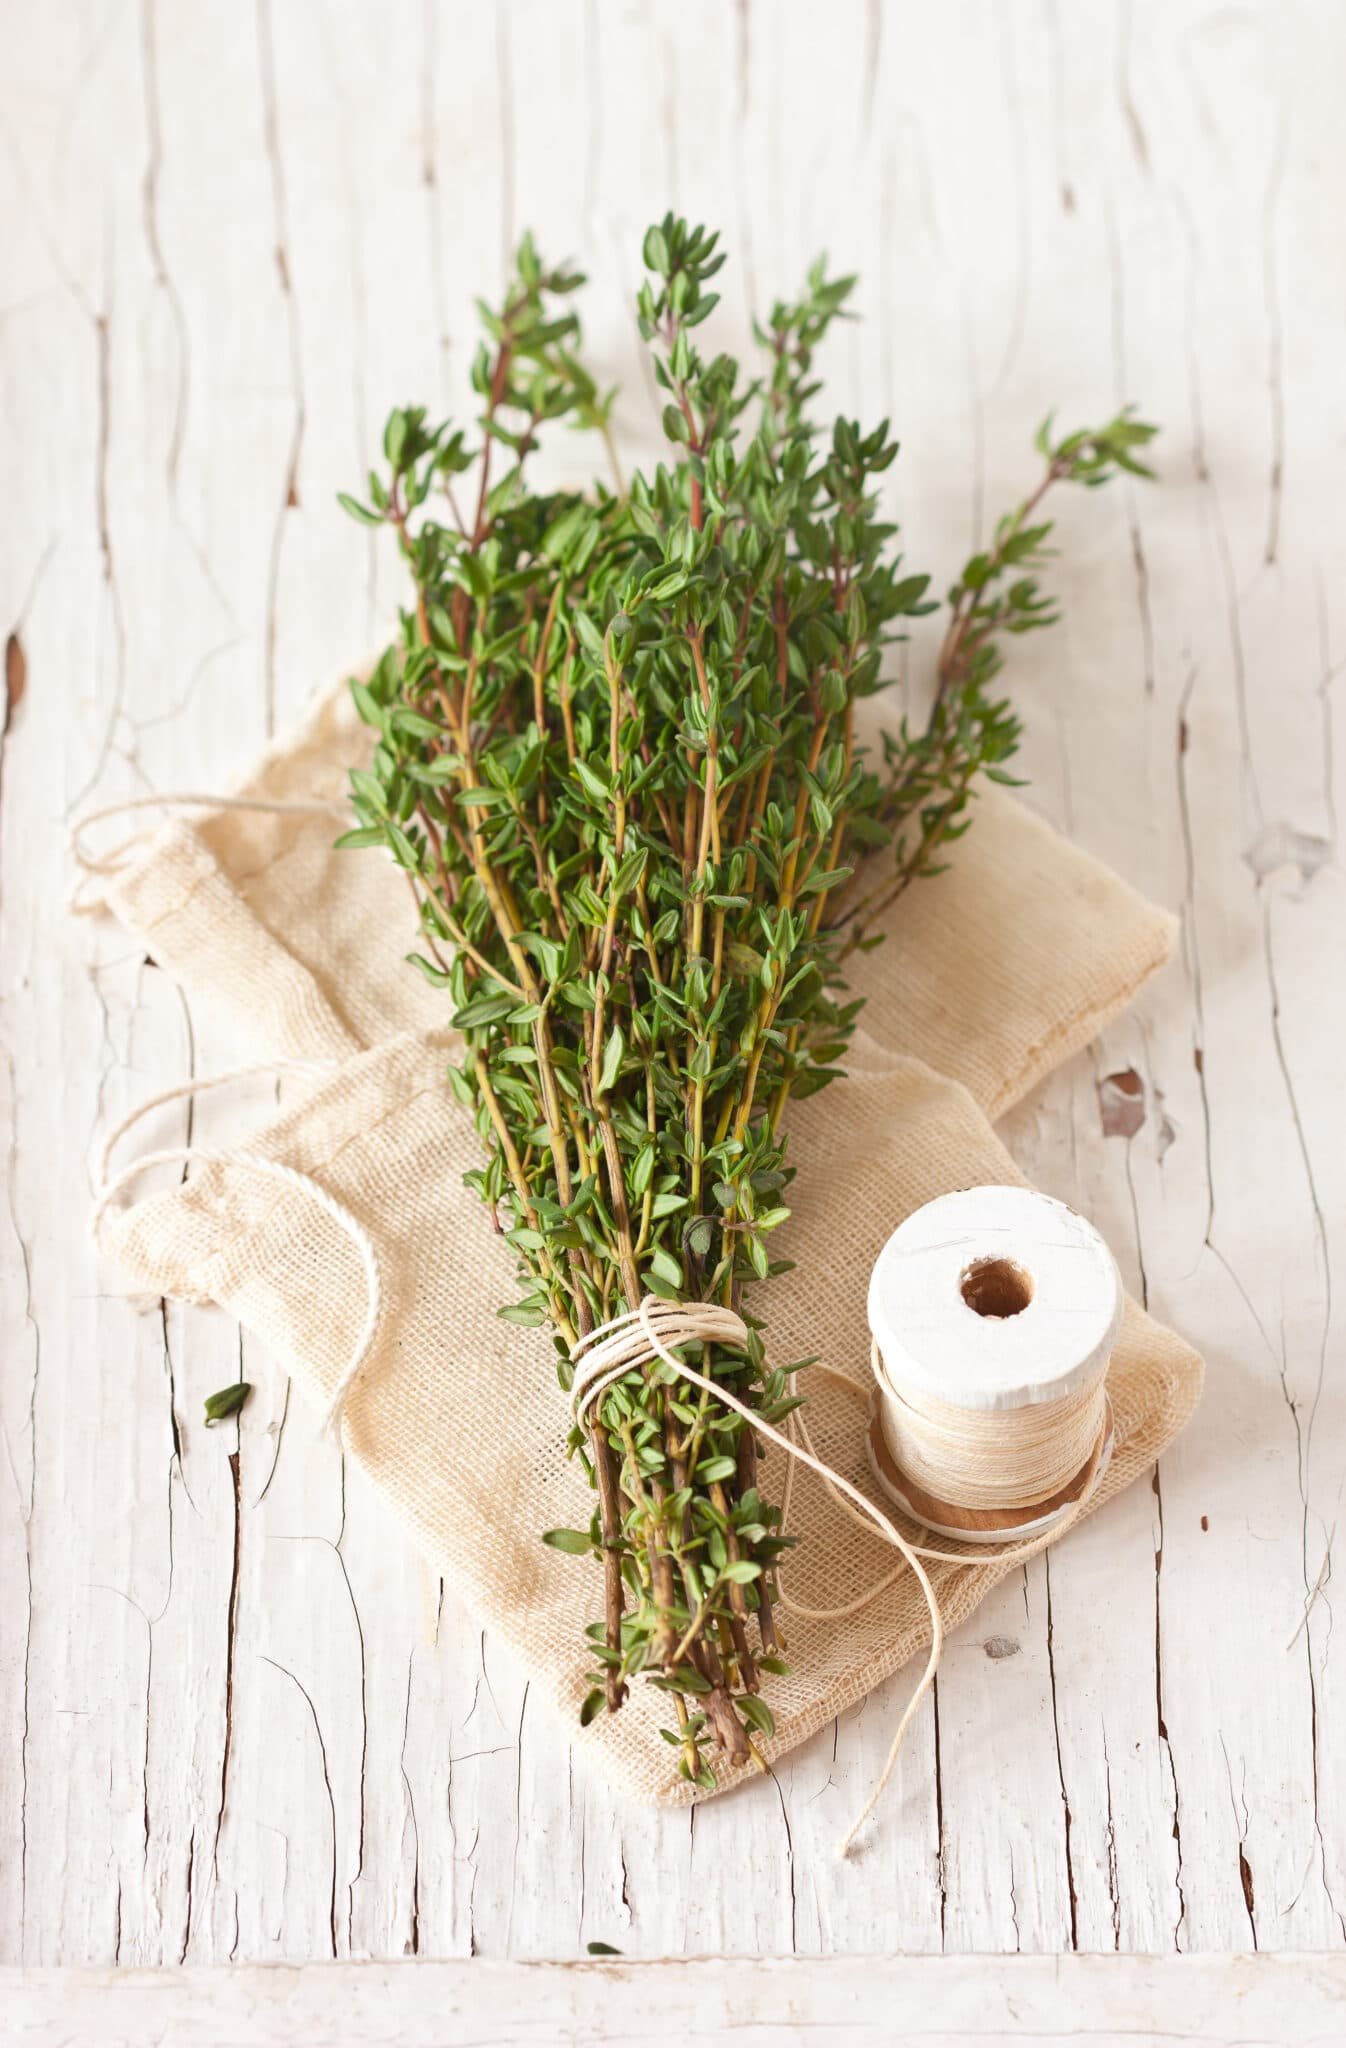 Bunch fresh thyme on an old wooden board tied with rustic string.